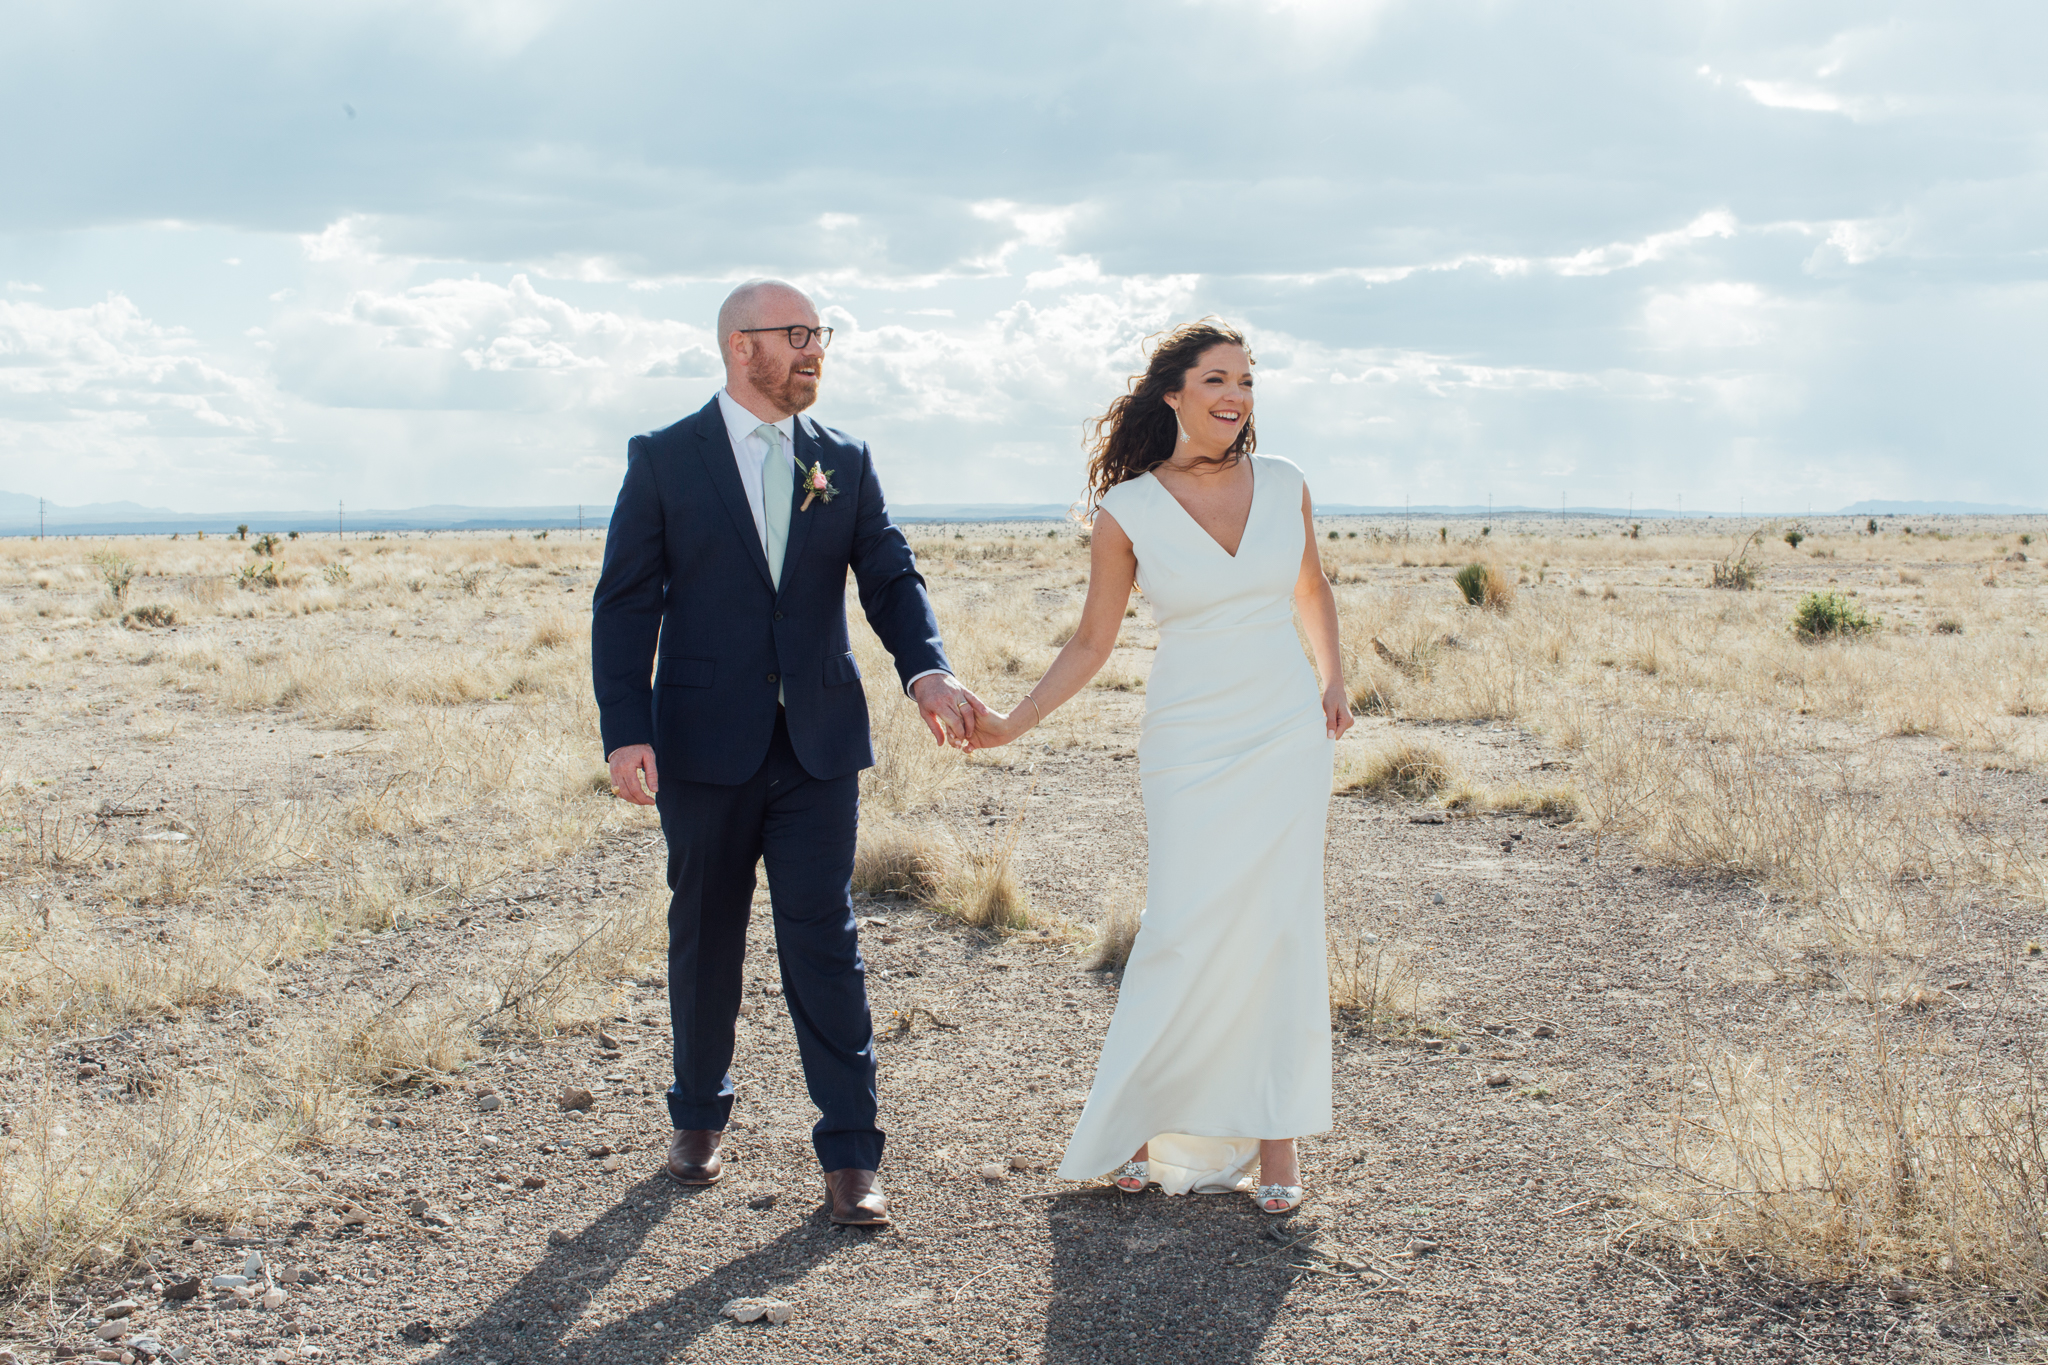 Marfa-Wedding-Photographers-23.jpg